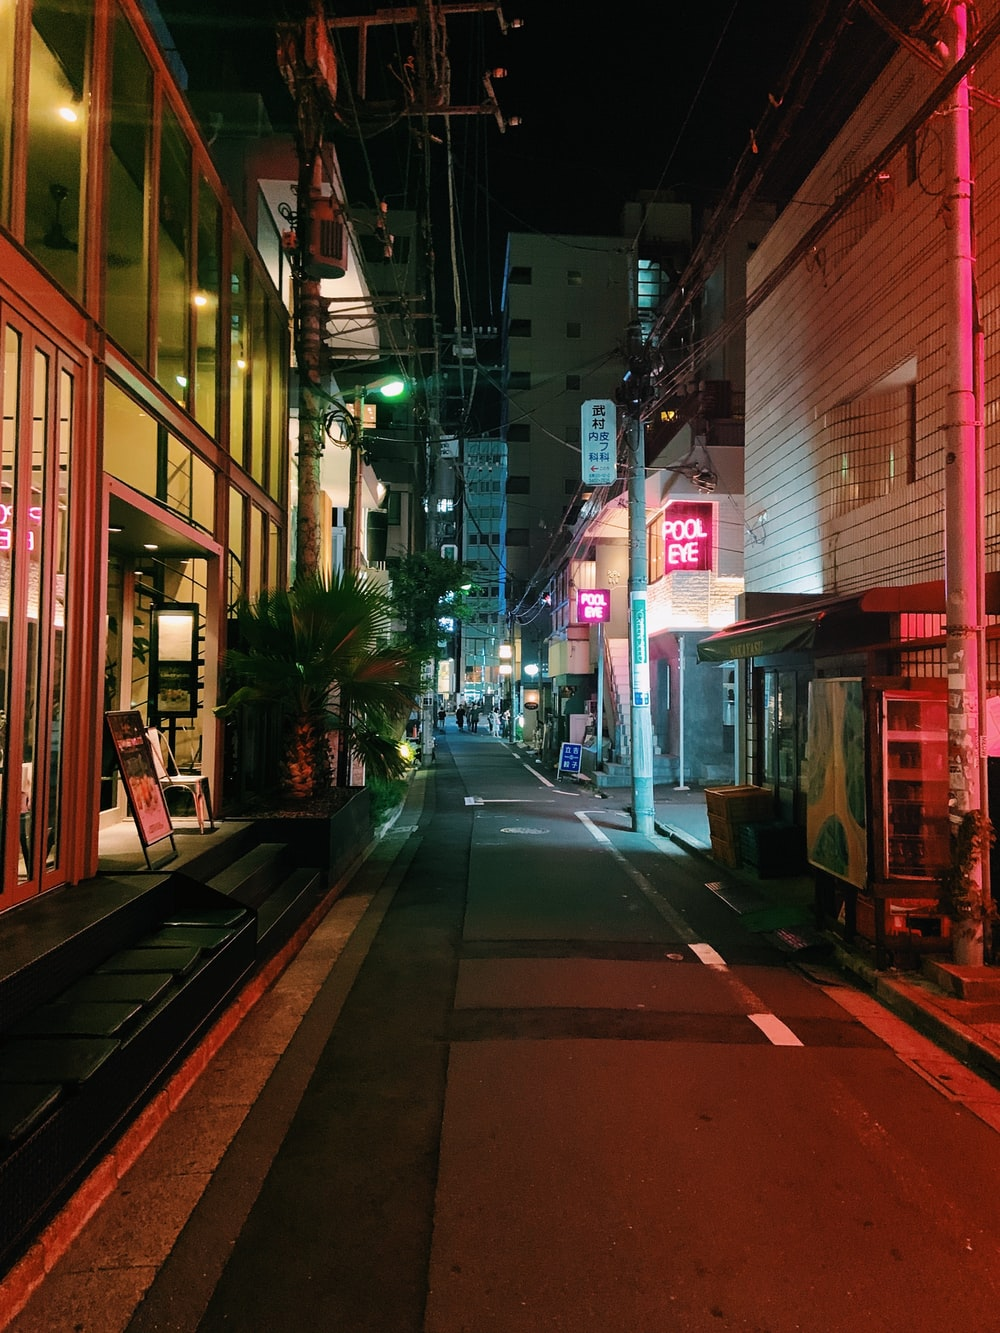 empty street with lighted street lights during night time